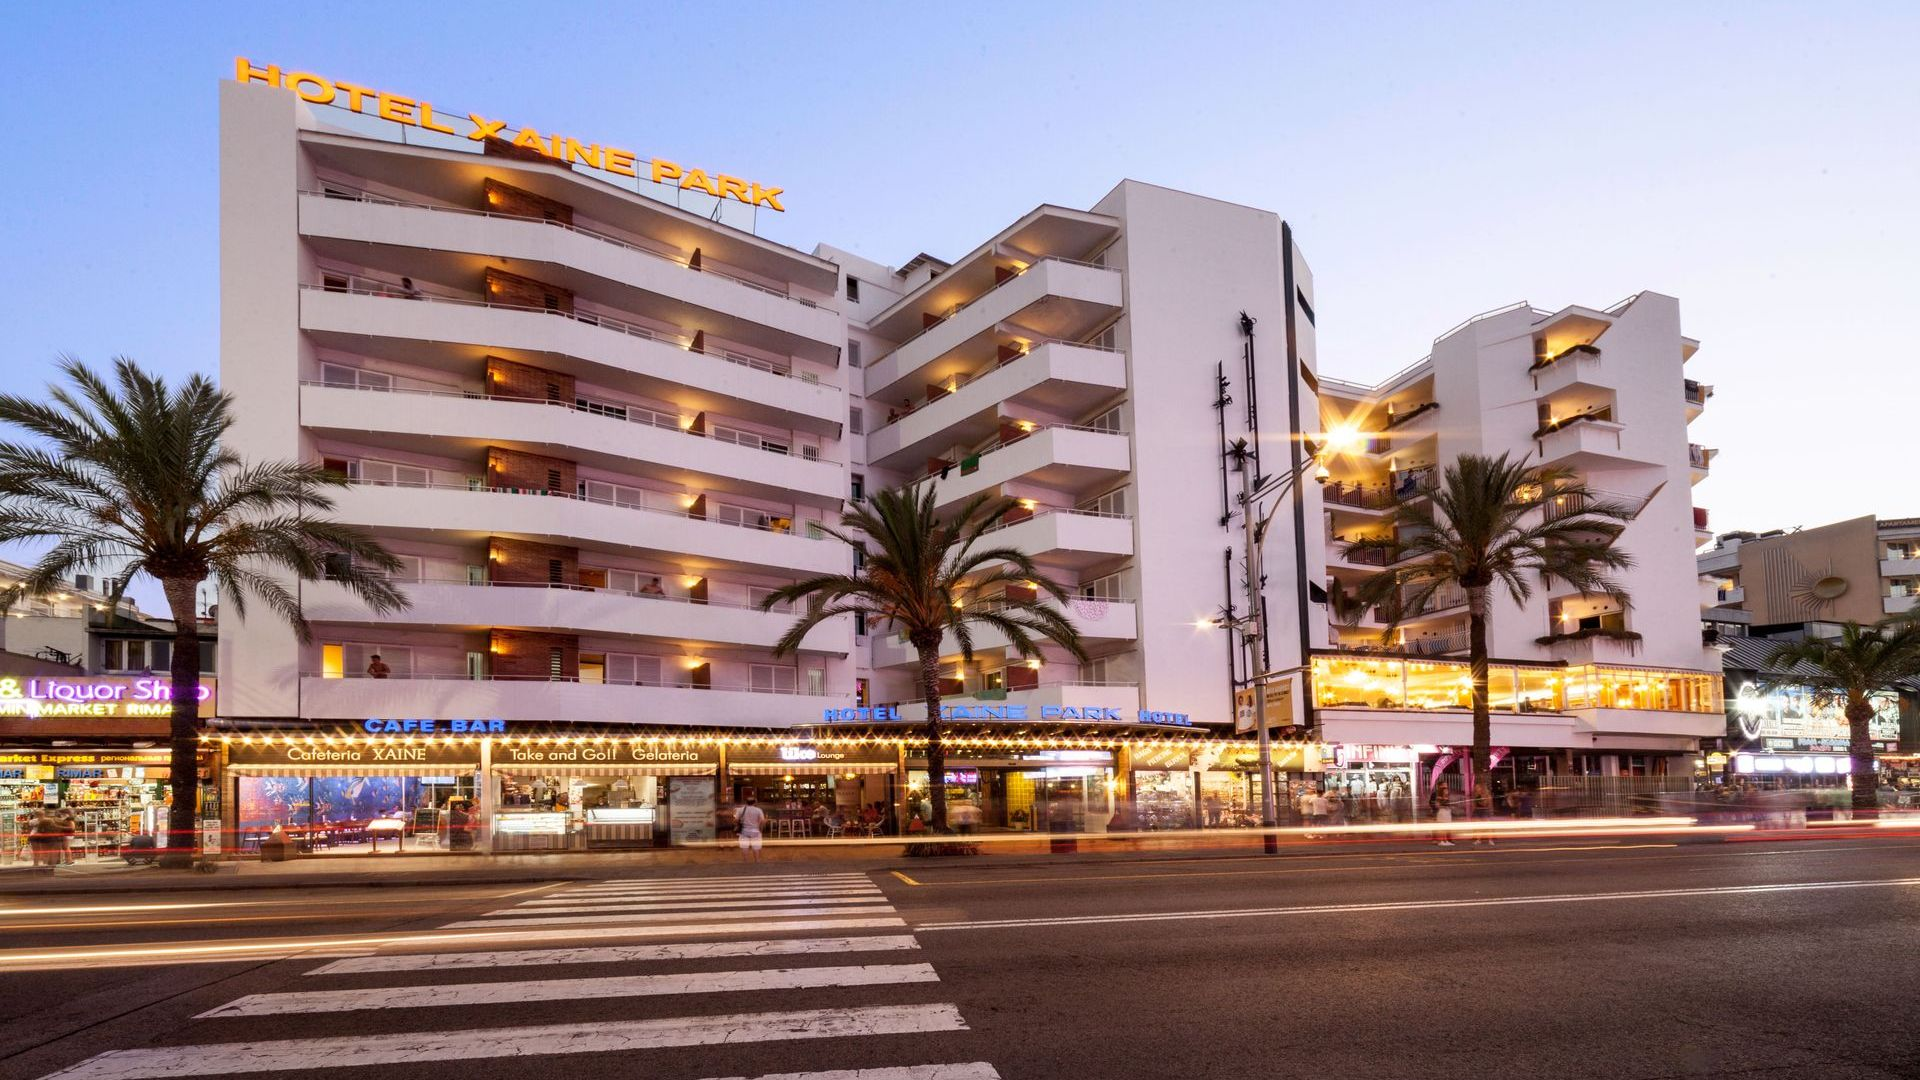 Stay in the city center of Lloret